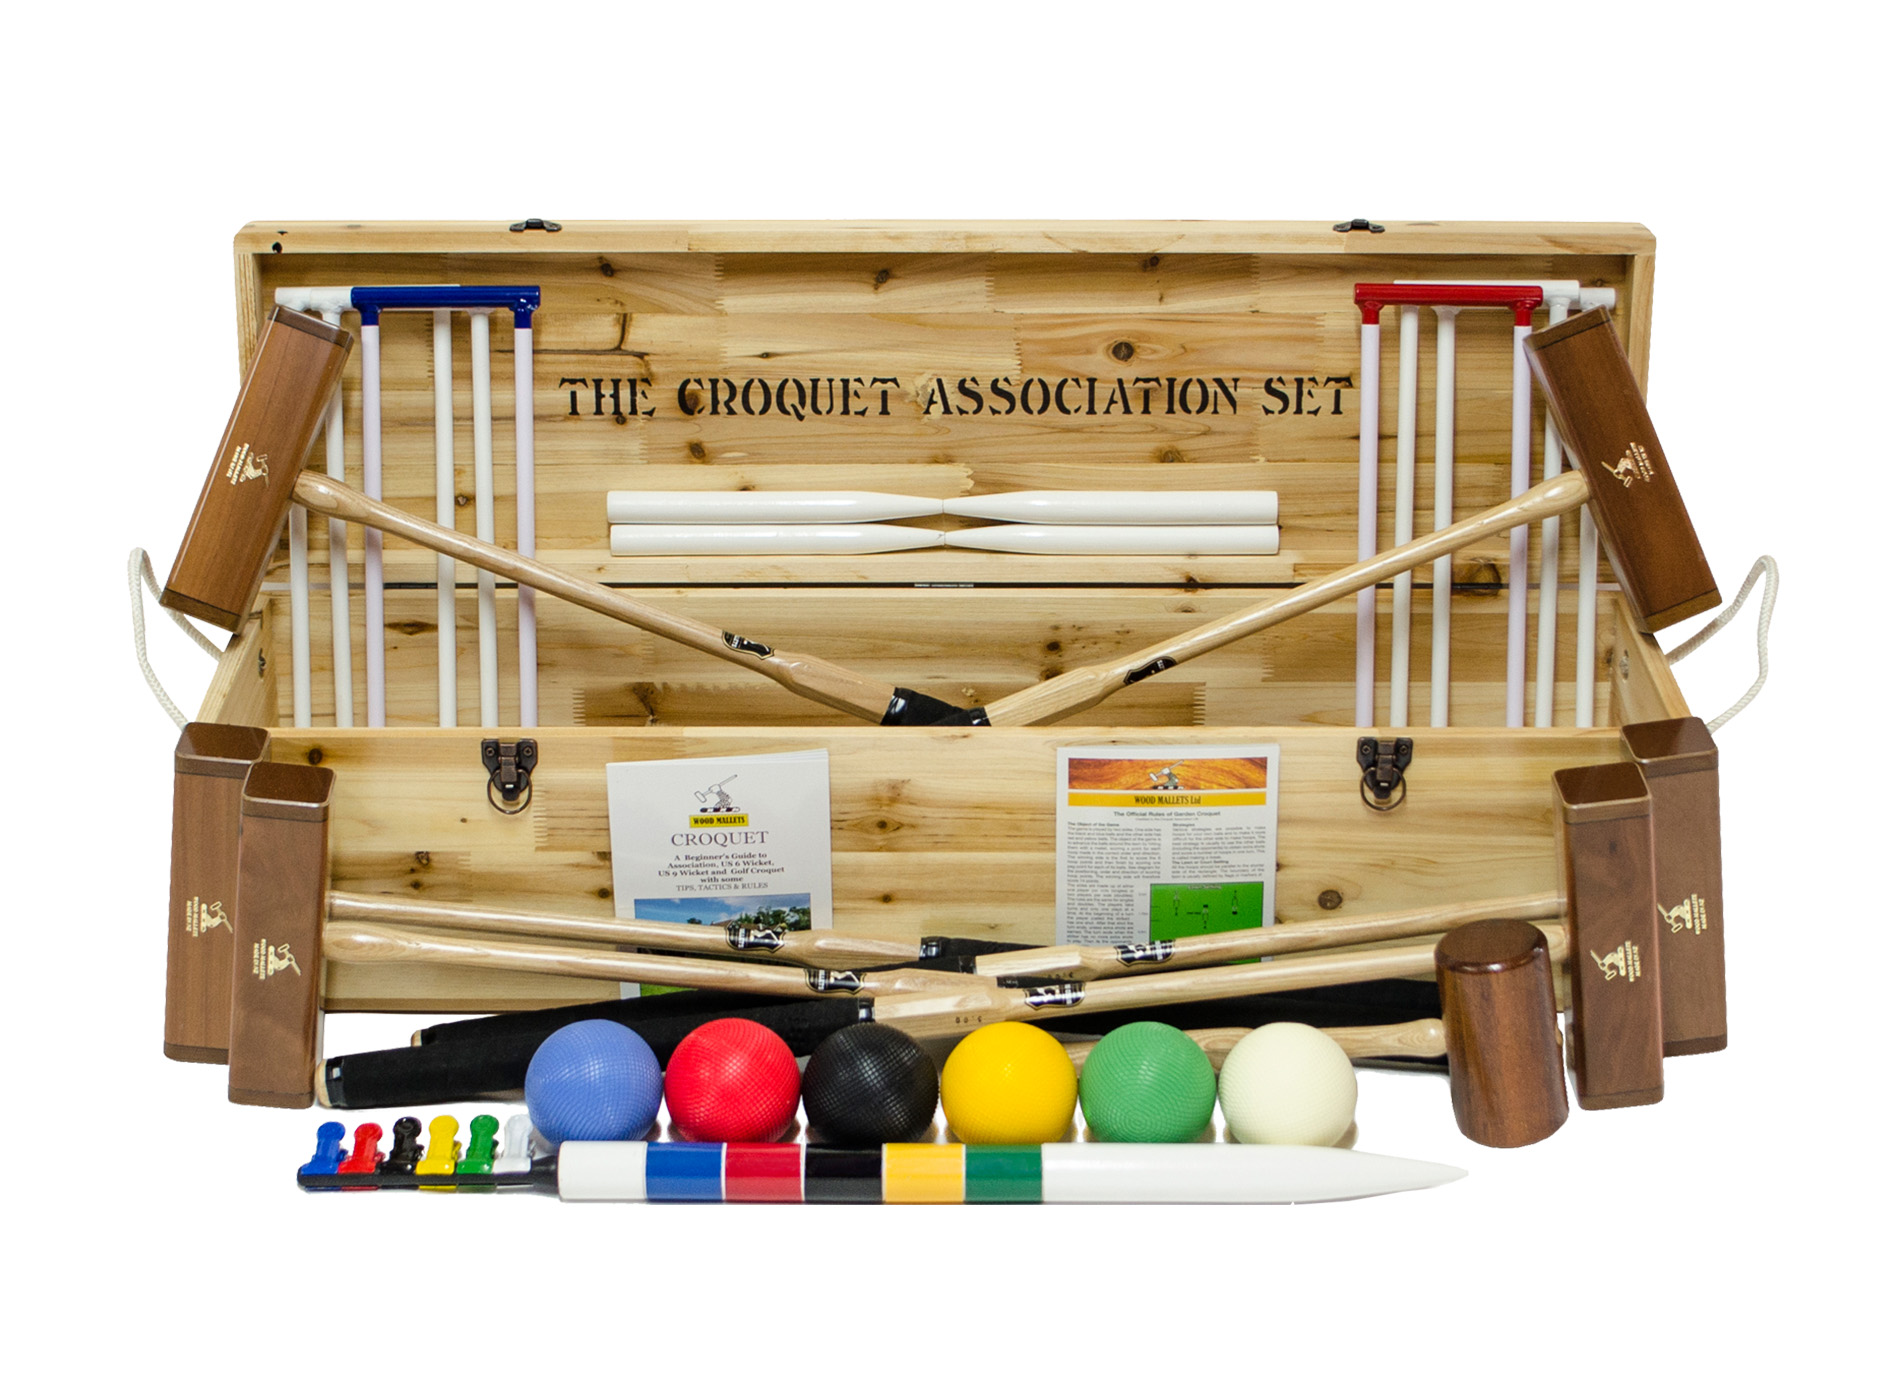 Wood Mallets - Croquet Association Set (6 Player)